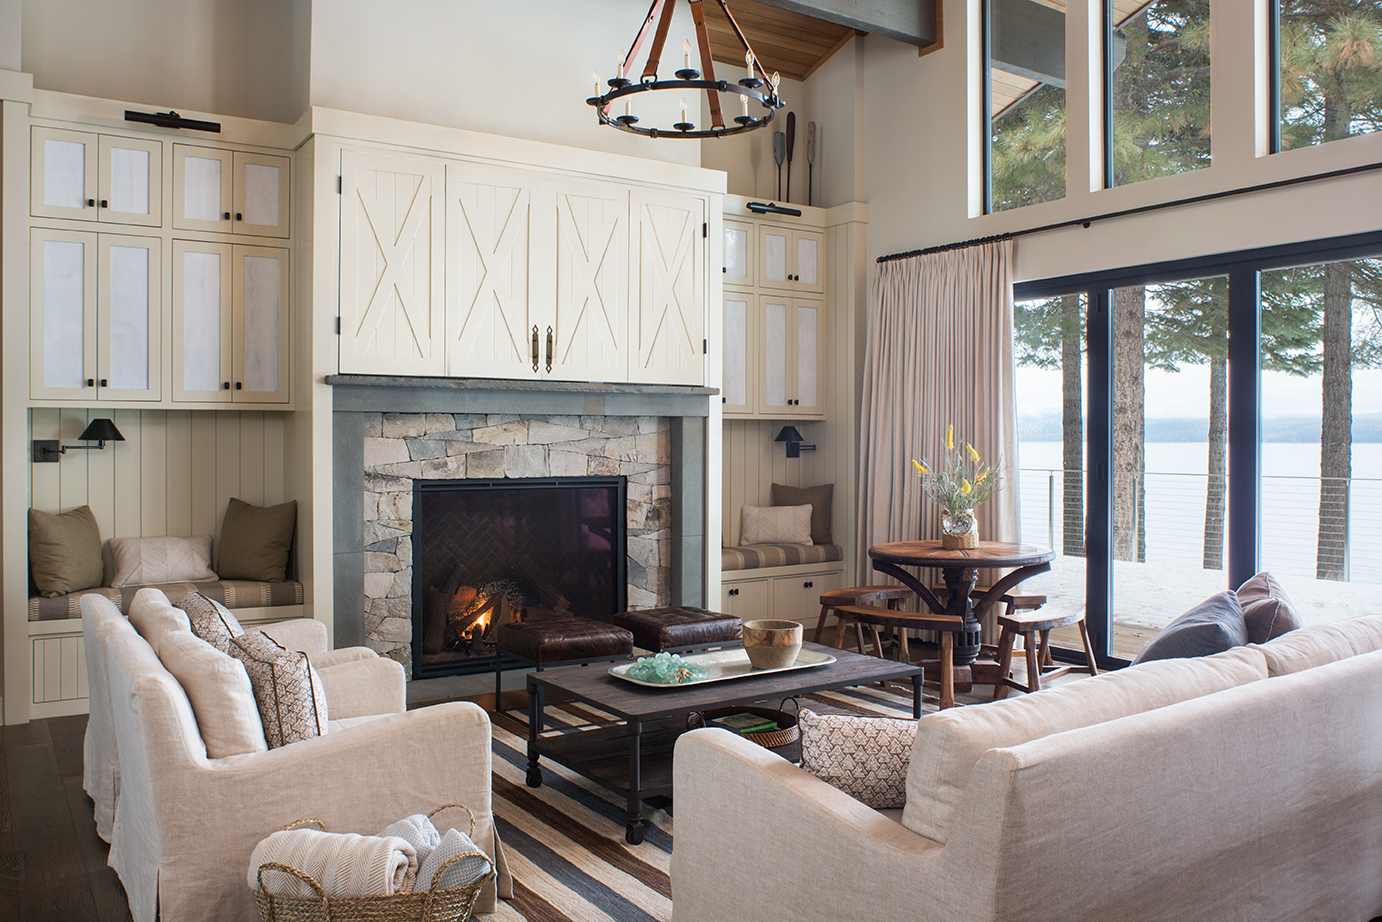 Living room revamp with fireplace. Chandelier, refaced cabinets. Redondo Beach.